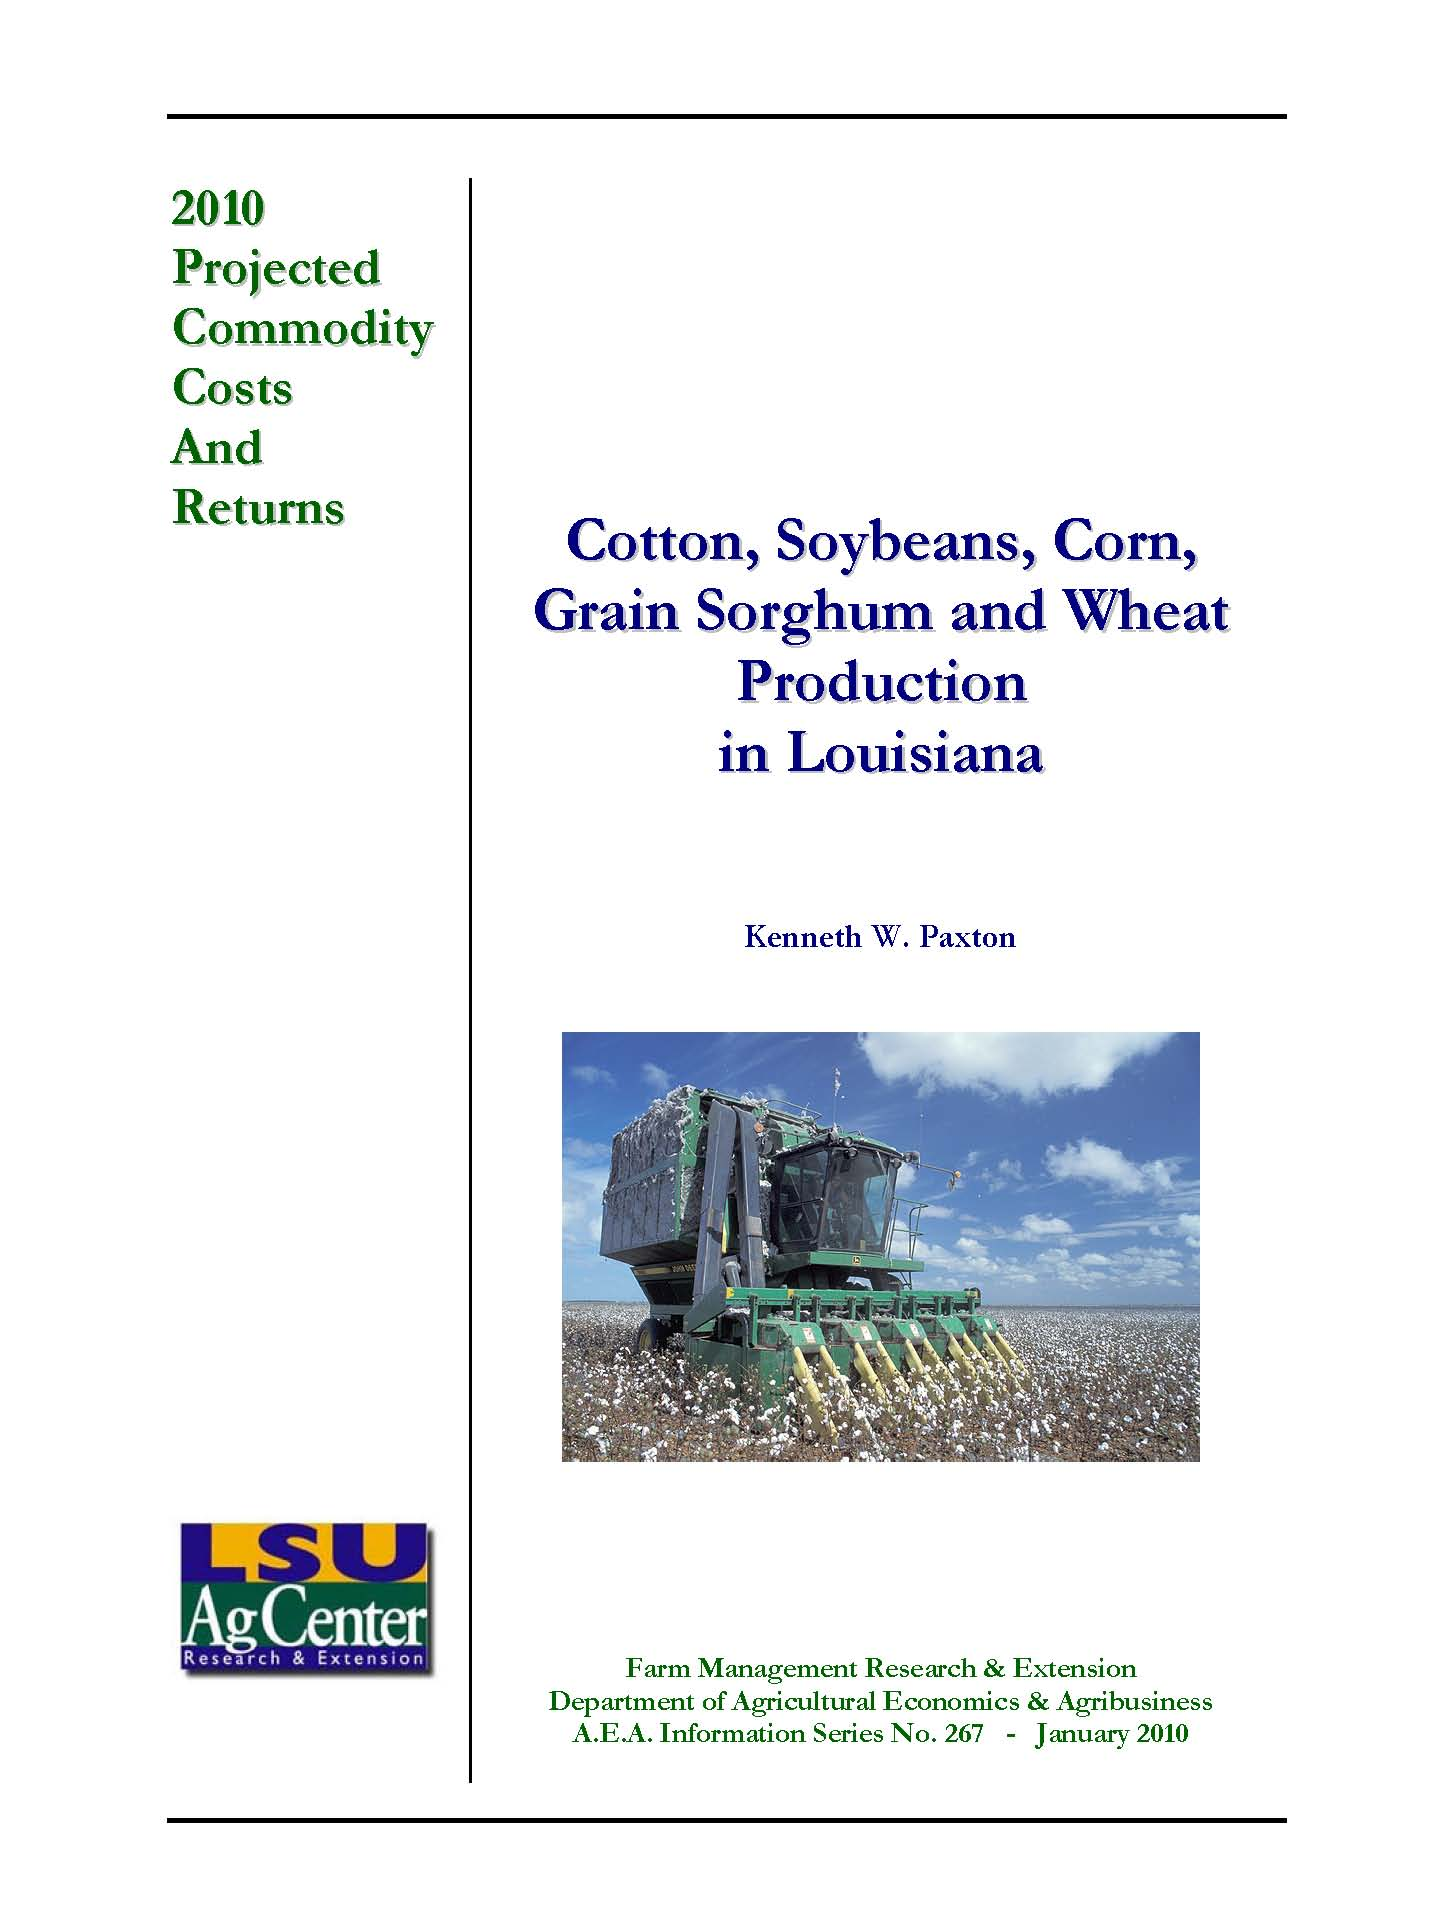 2010 Projected Costs and Returns - Cotton Soybeans Grain Sorghum and Wheat Louisiana